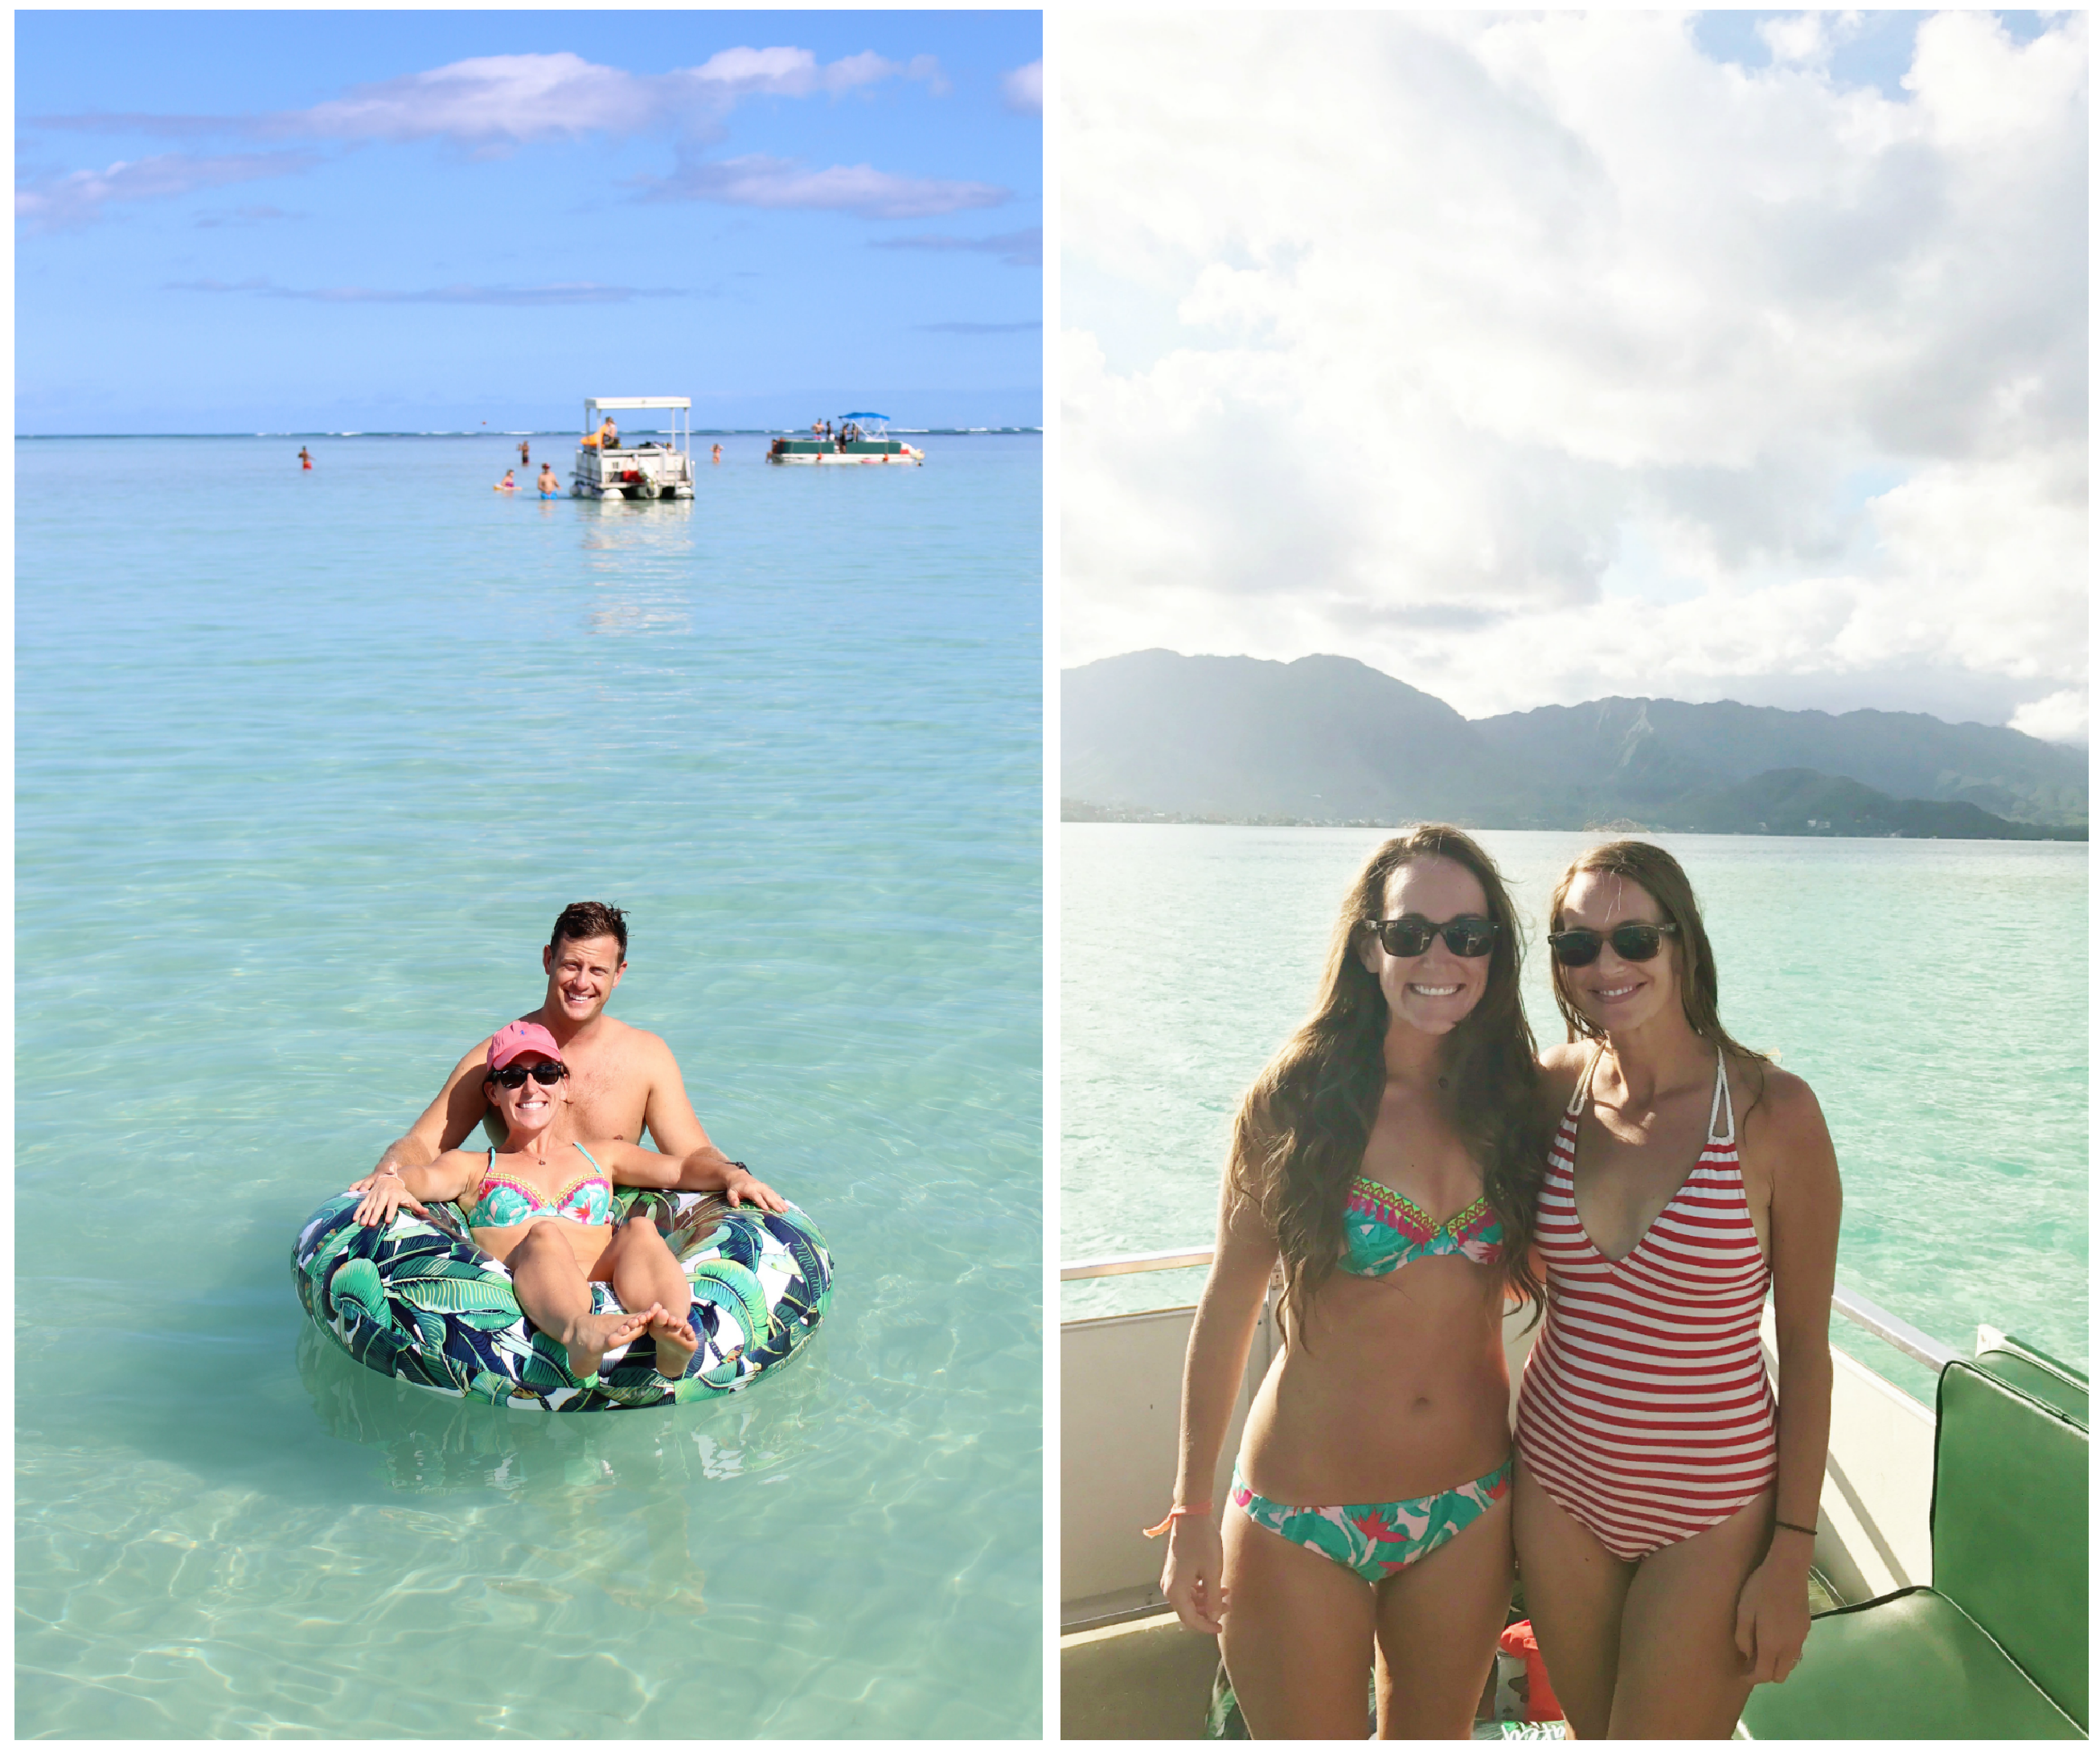 Kaneohe Sandbar Oahu - Life Lately - Communikait by Kait Hanson